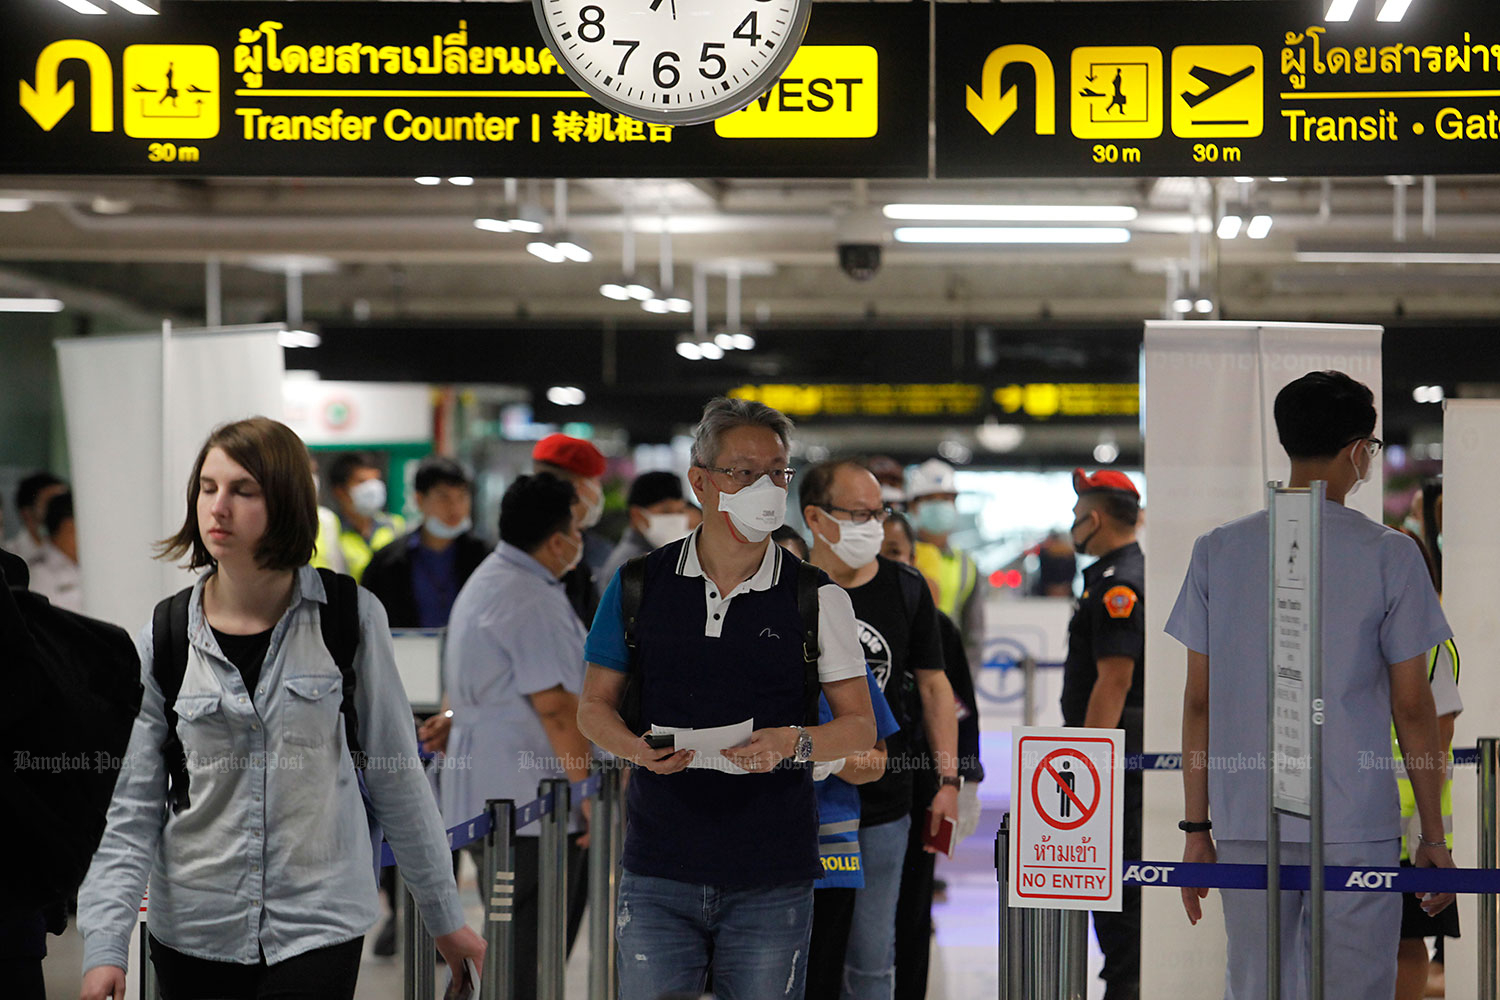 The Tourism and Sports Ministry has sought help from private hospitals to carry out testing of tourists arriving at airports. (Photo by Wichan Charoenkiatpakul)